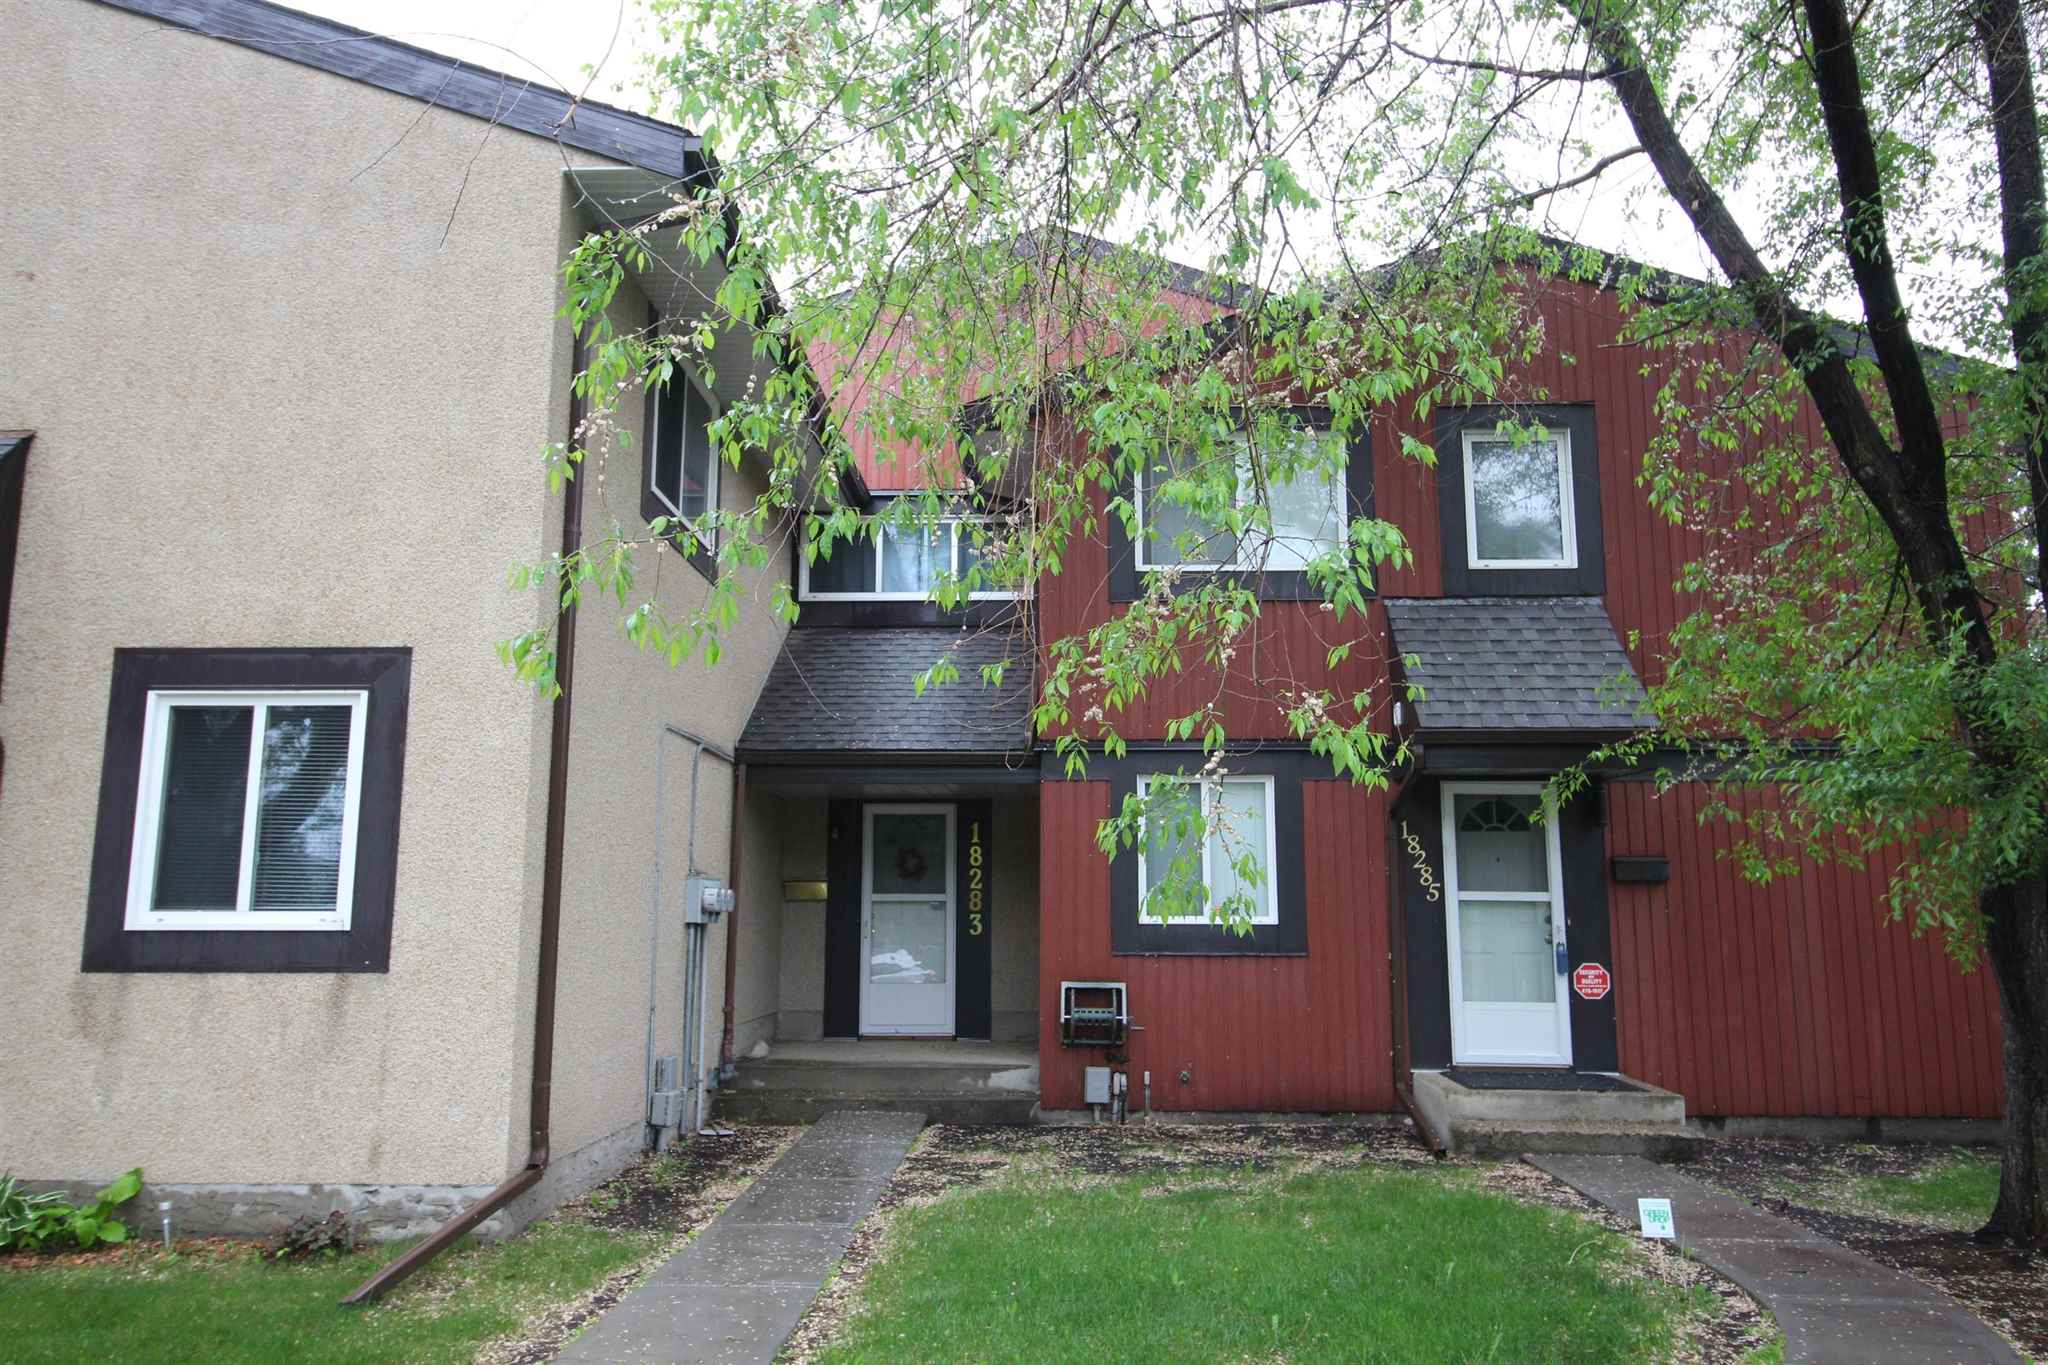 Great potential and affordable for first time home buyer! This townhouse is located in the West End with just minutes away from West Edmonton Mall, schools, parks, Anthony Henday and Whitemud Freeway. This home offers 3 bedrooms, 1.5 bathrooms, walk through kitchen connecting to your dinning room that opens up to your spacious living room. Basement is finished with a family room, laundry area and lots of storage room. It comes with 1 assigned outdoor energized parking stall. This complex has newer shingles, windows and lots of visitor parking space.